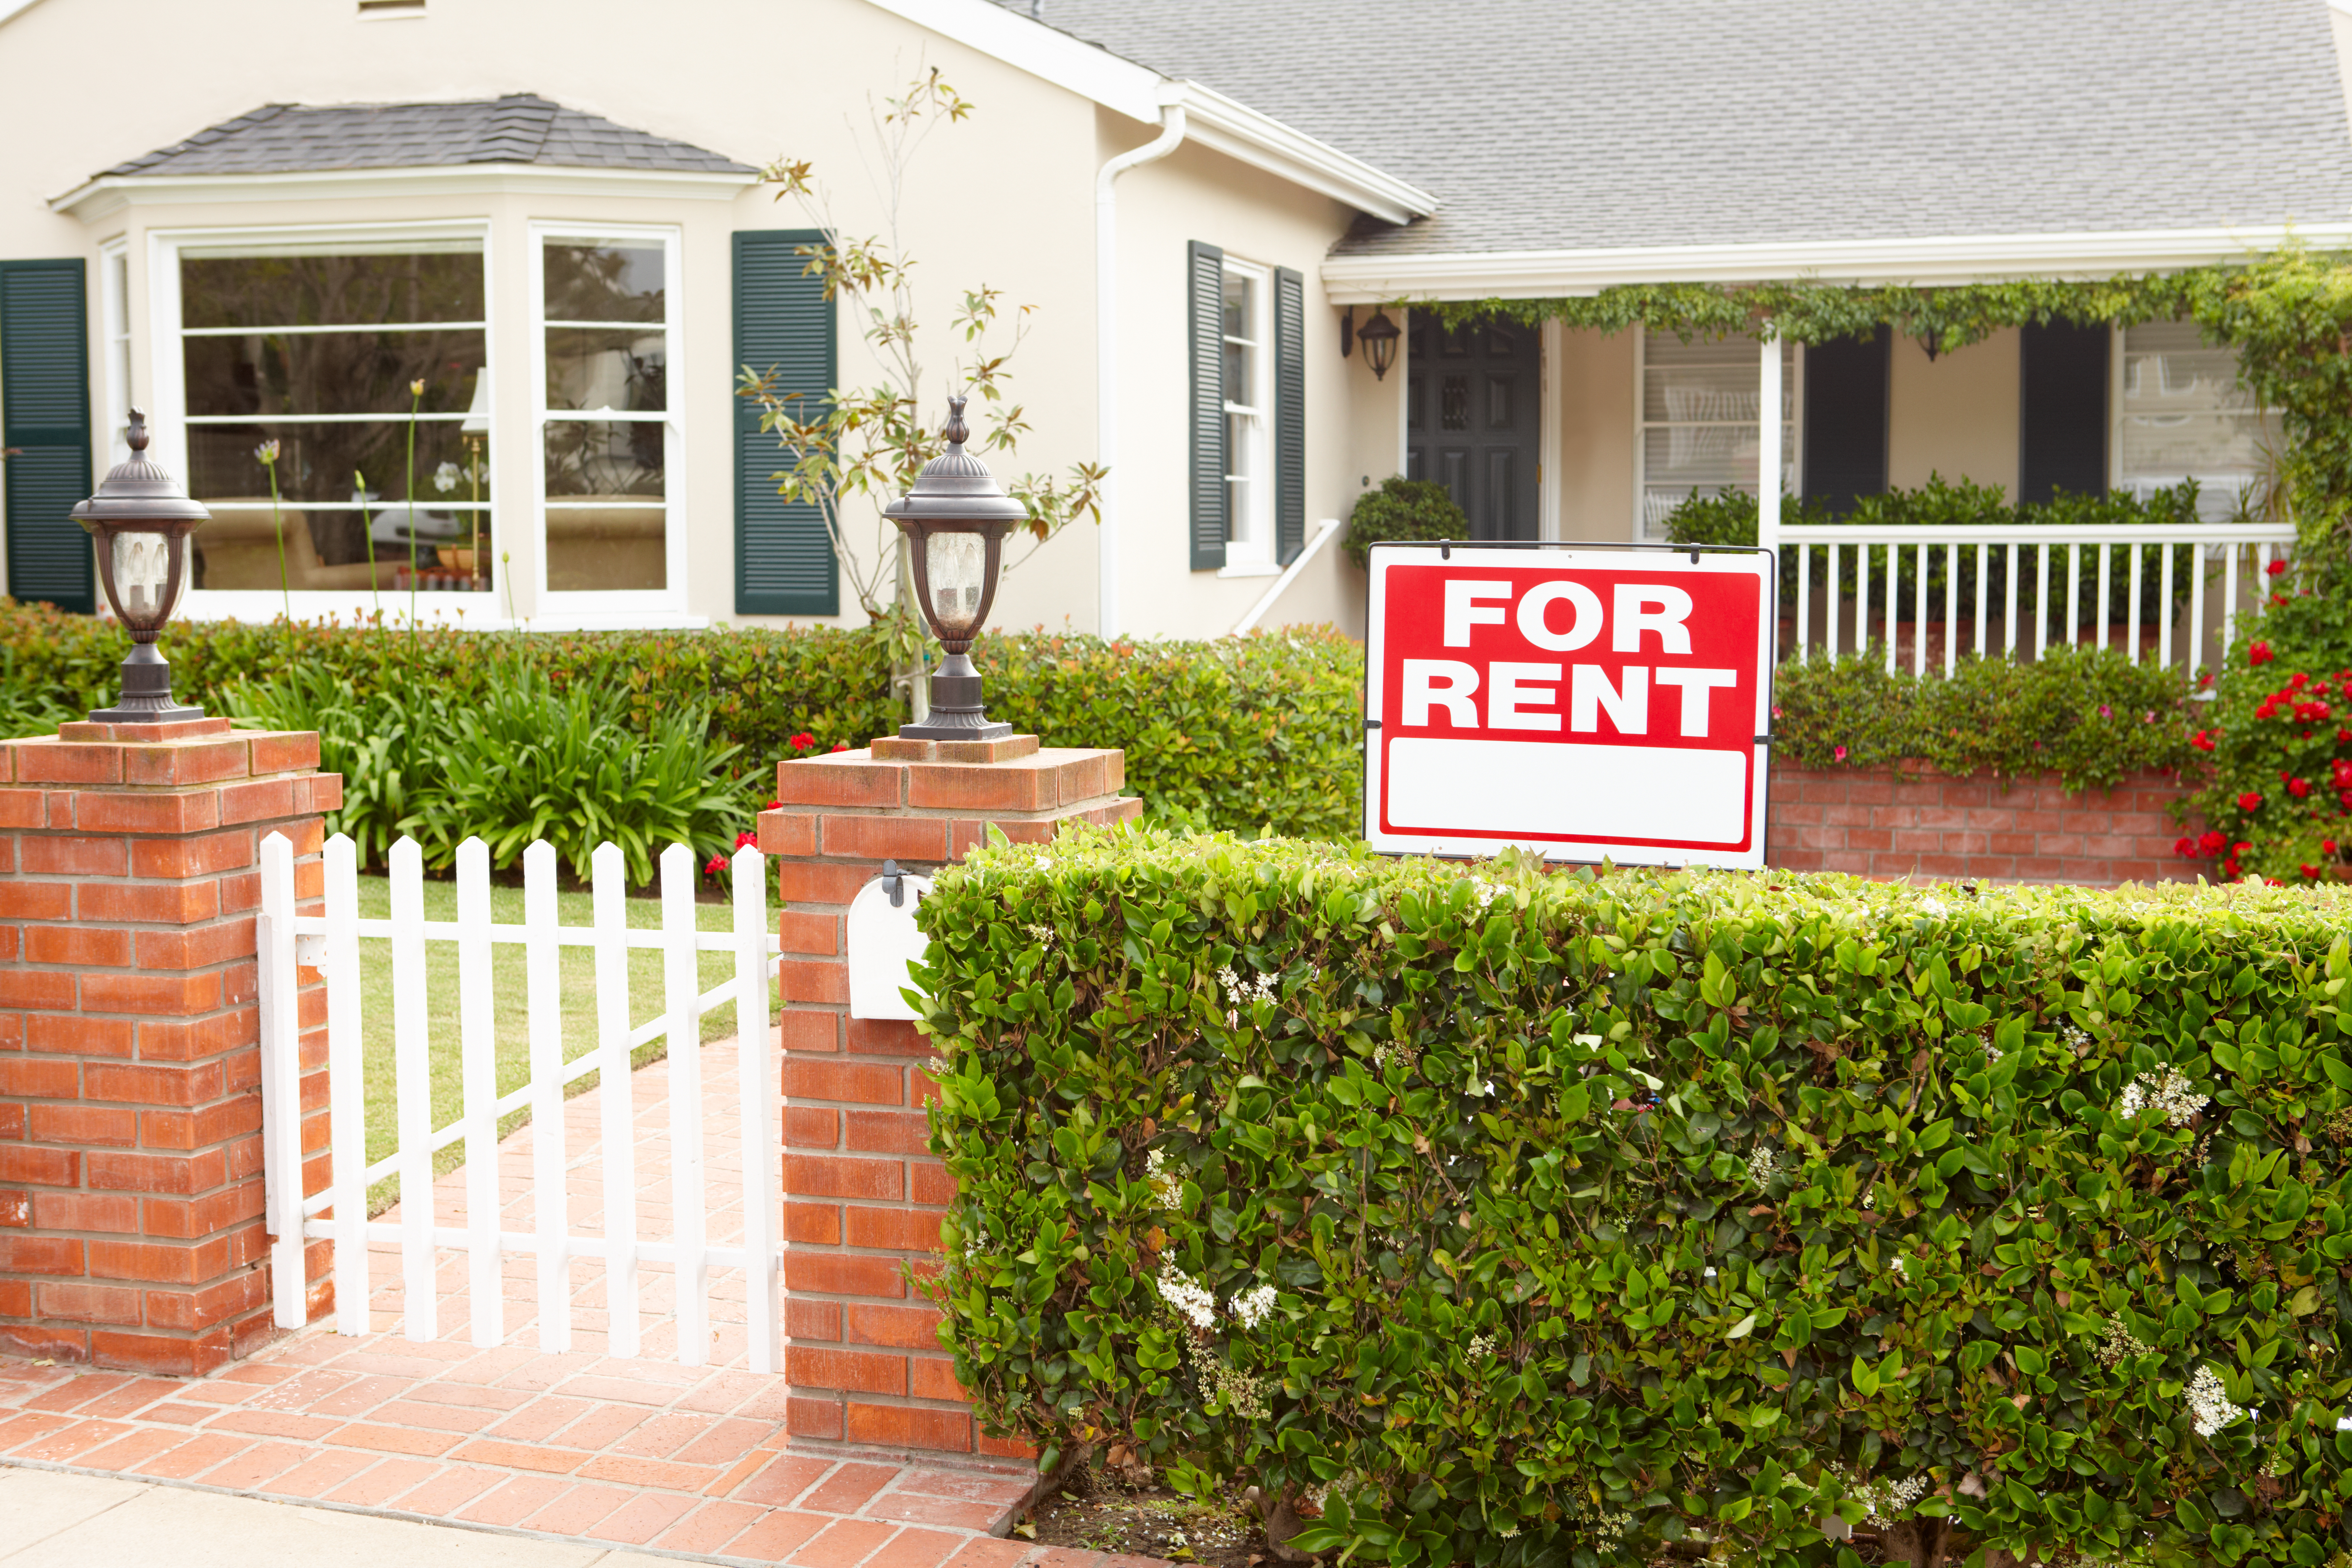 How Would a Landlord Find an Eviction on Your Record? | Home Guides